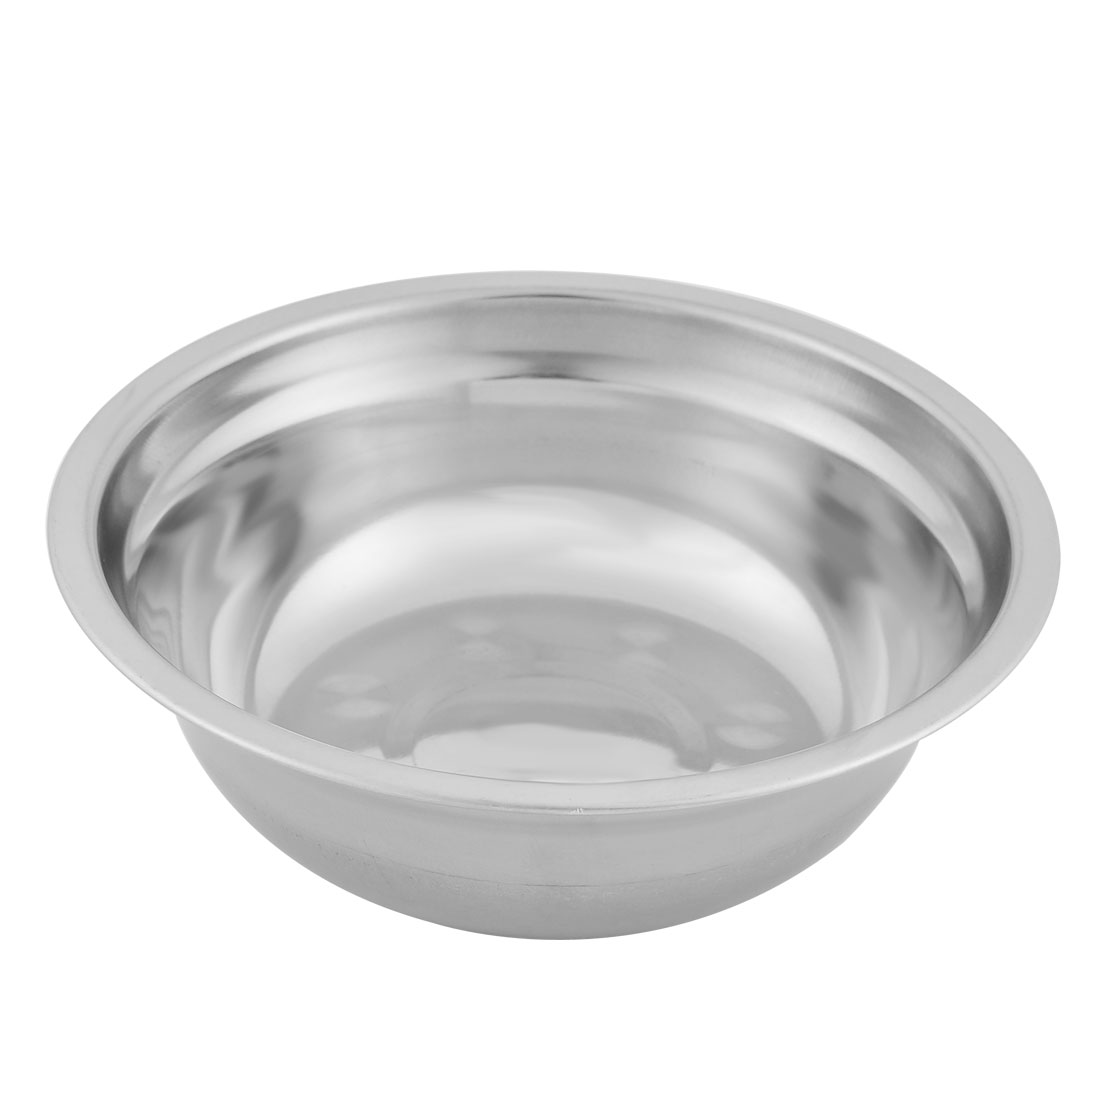 Household Kitchen Stainless Steel Fruit Soup Rice Dinner Bowl 17cm Diameter Silver Tone